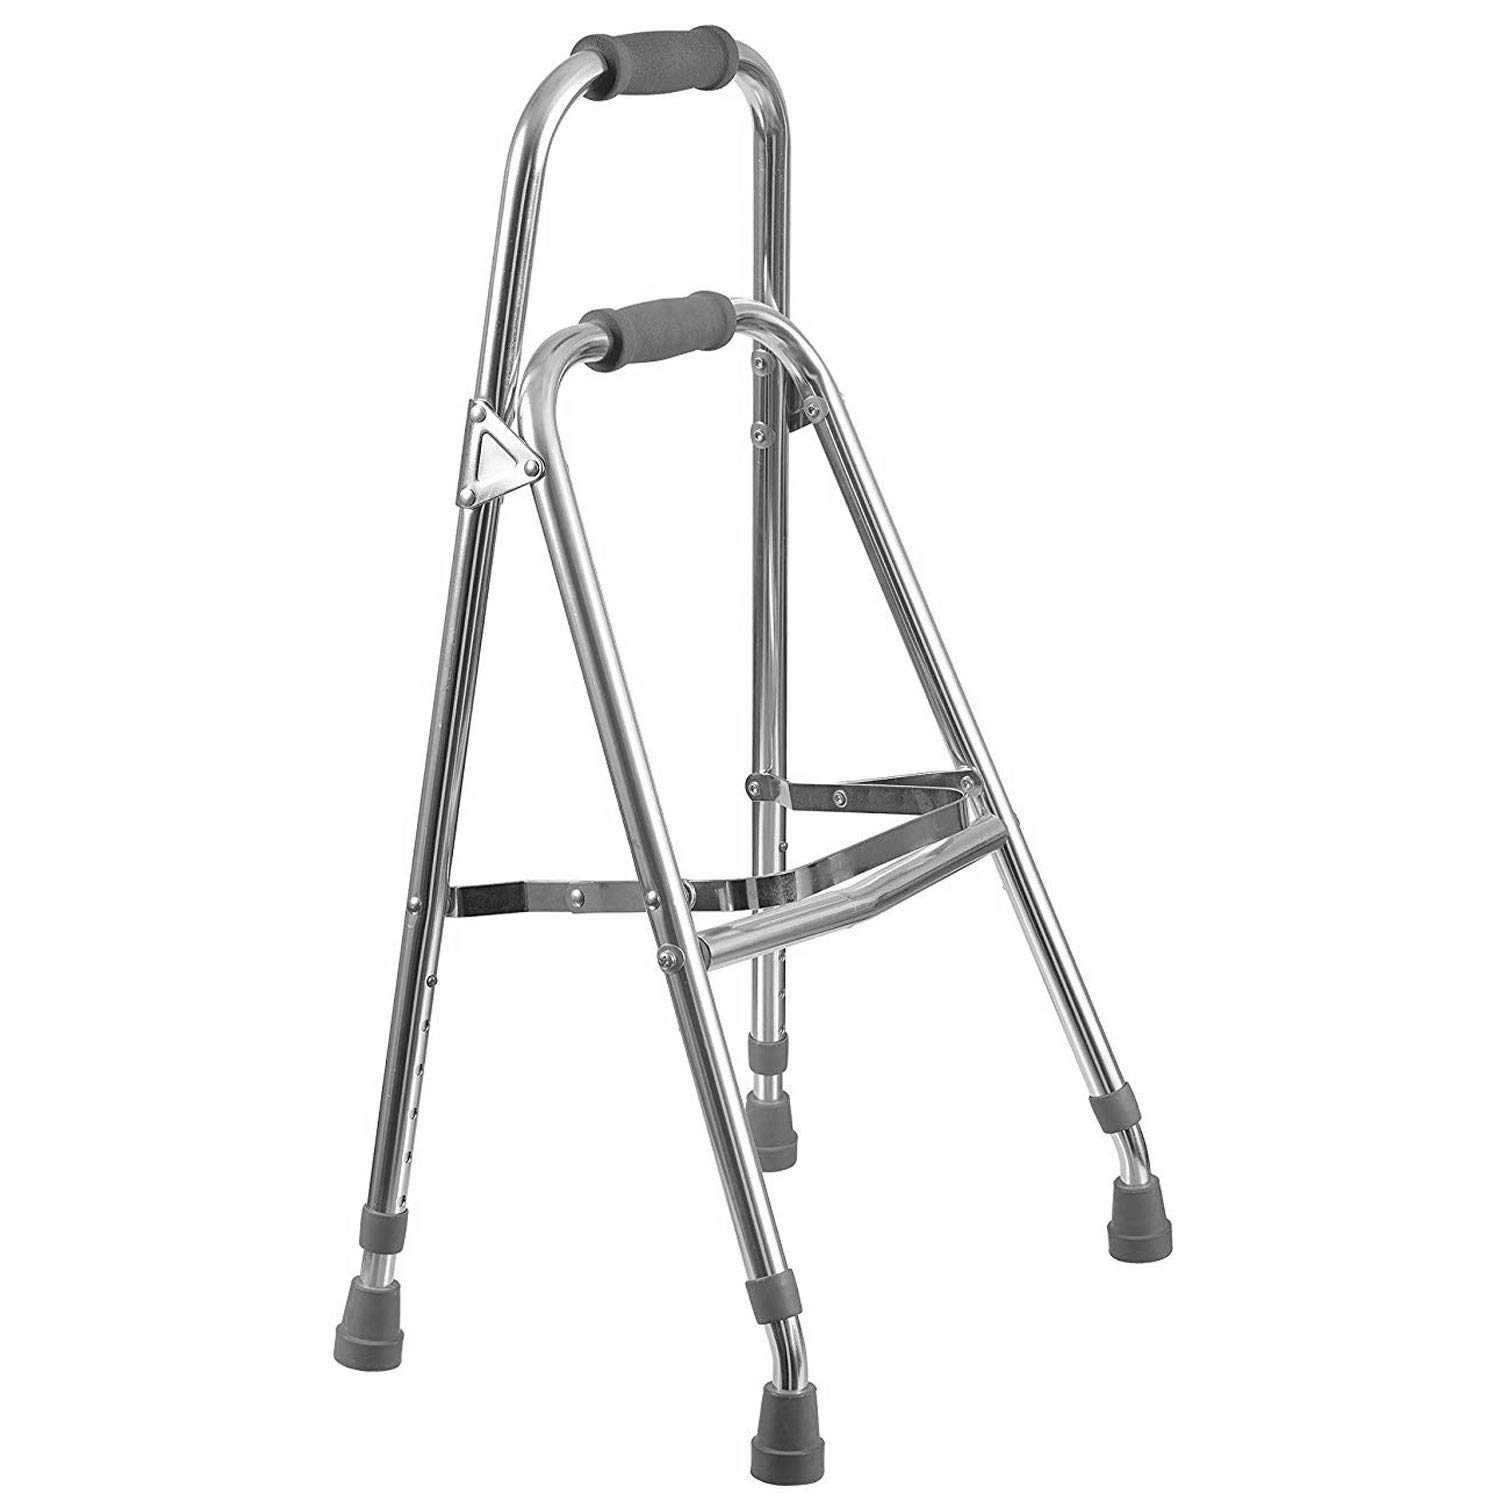 Duro-Med Folding Hemi-Walker provides Support, Aluminum, Silver by Duro-Med